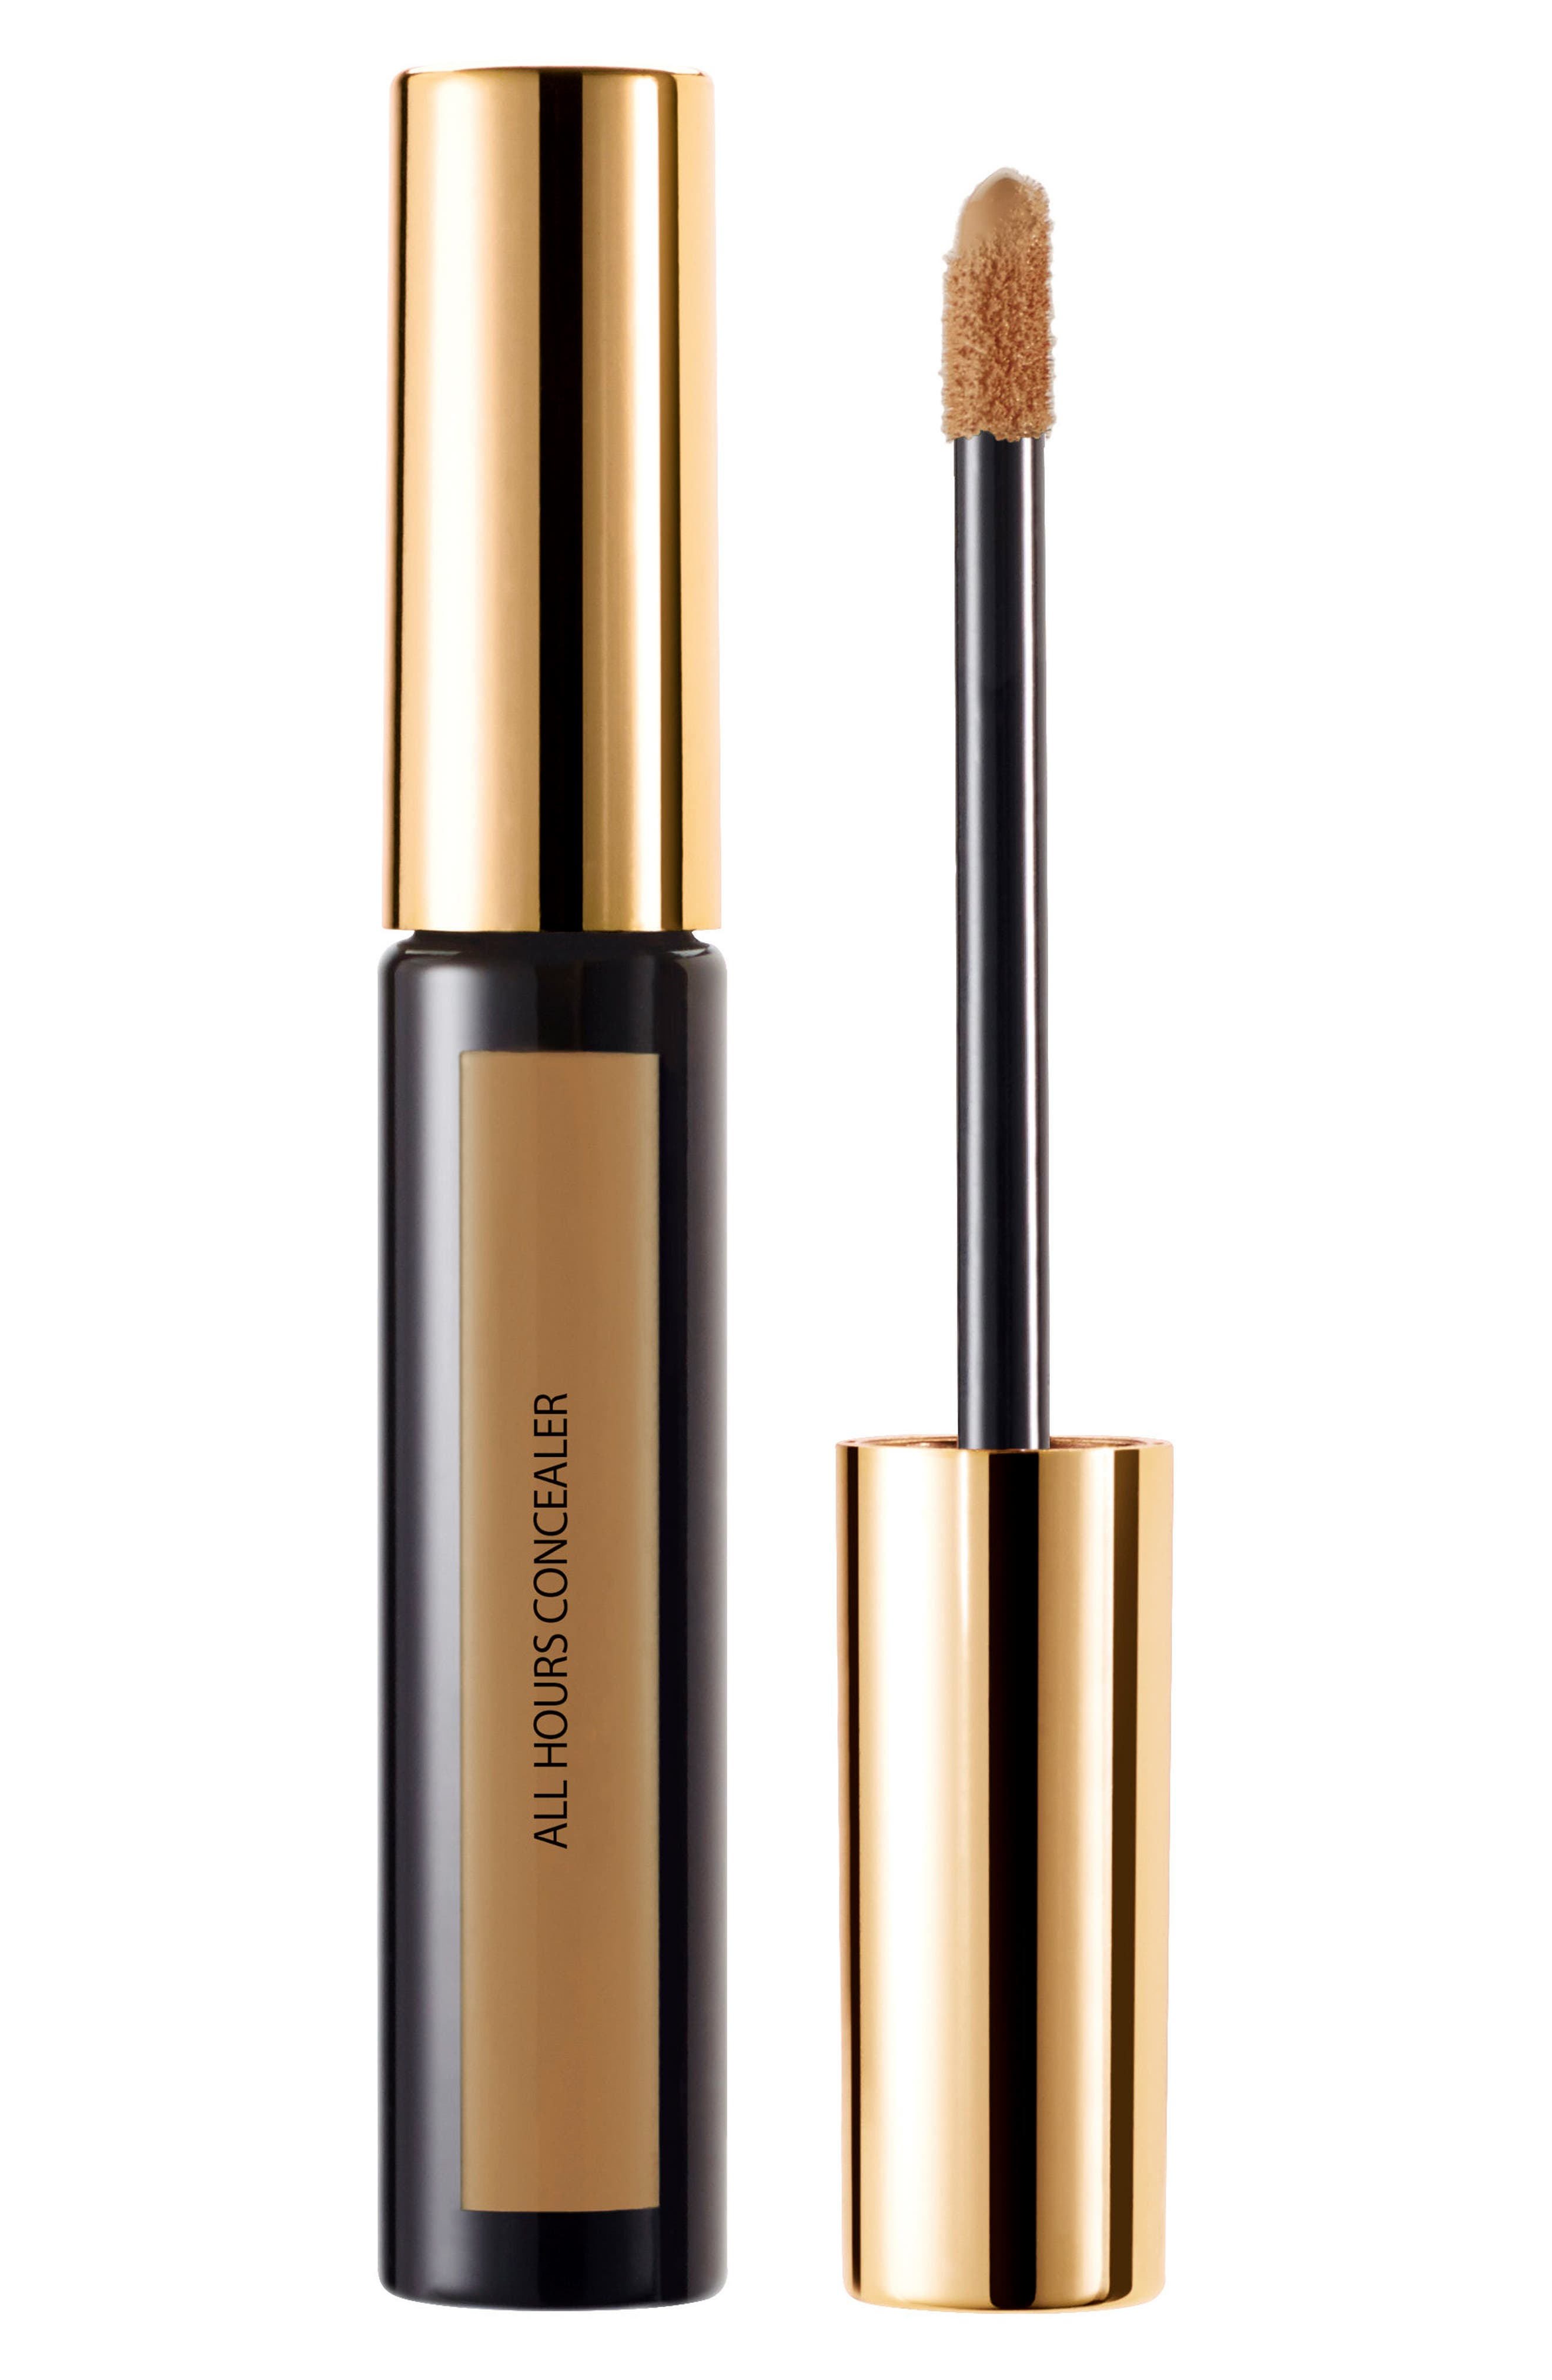 Yves Saint Laurent All Hours Concealer - 6 Toffee